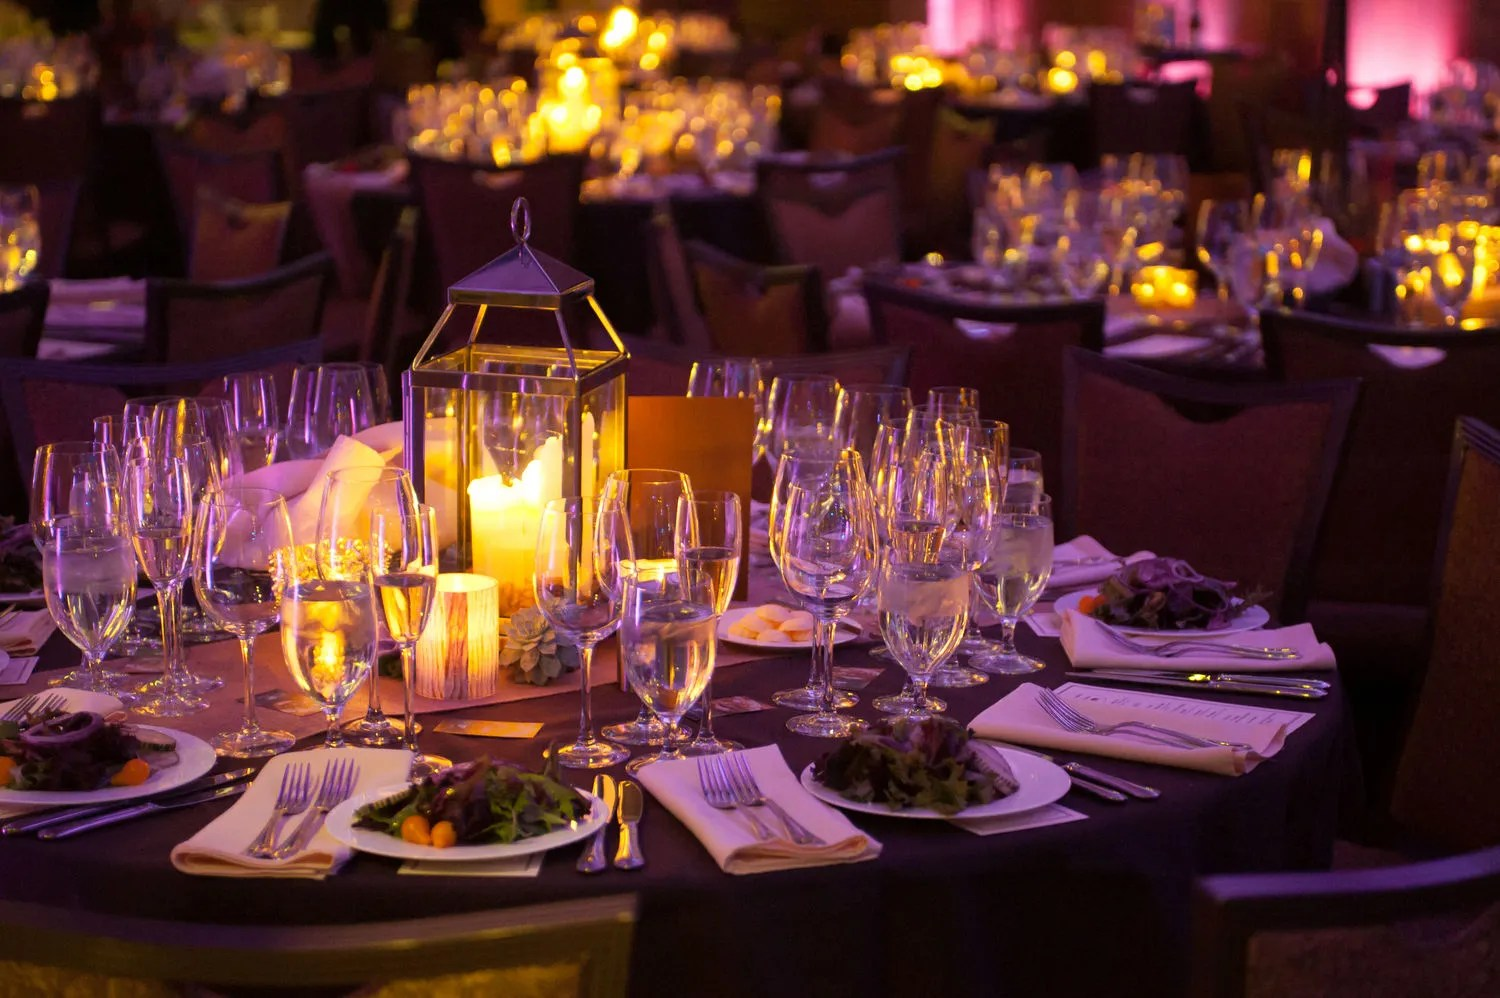 Wedding Reception Decoration Ideas For Small Spaces